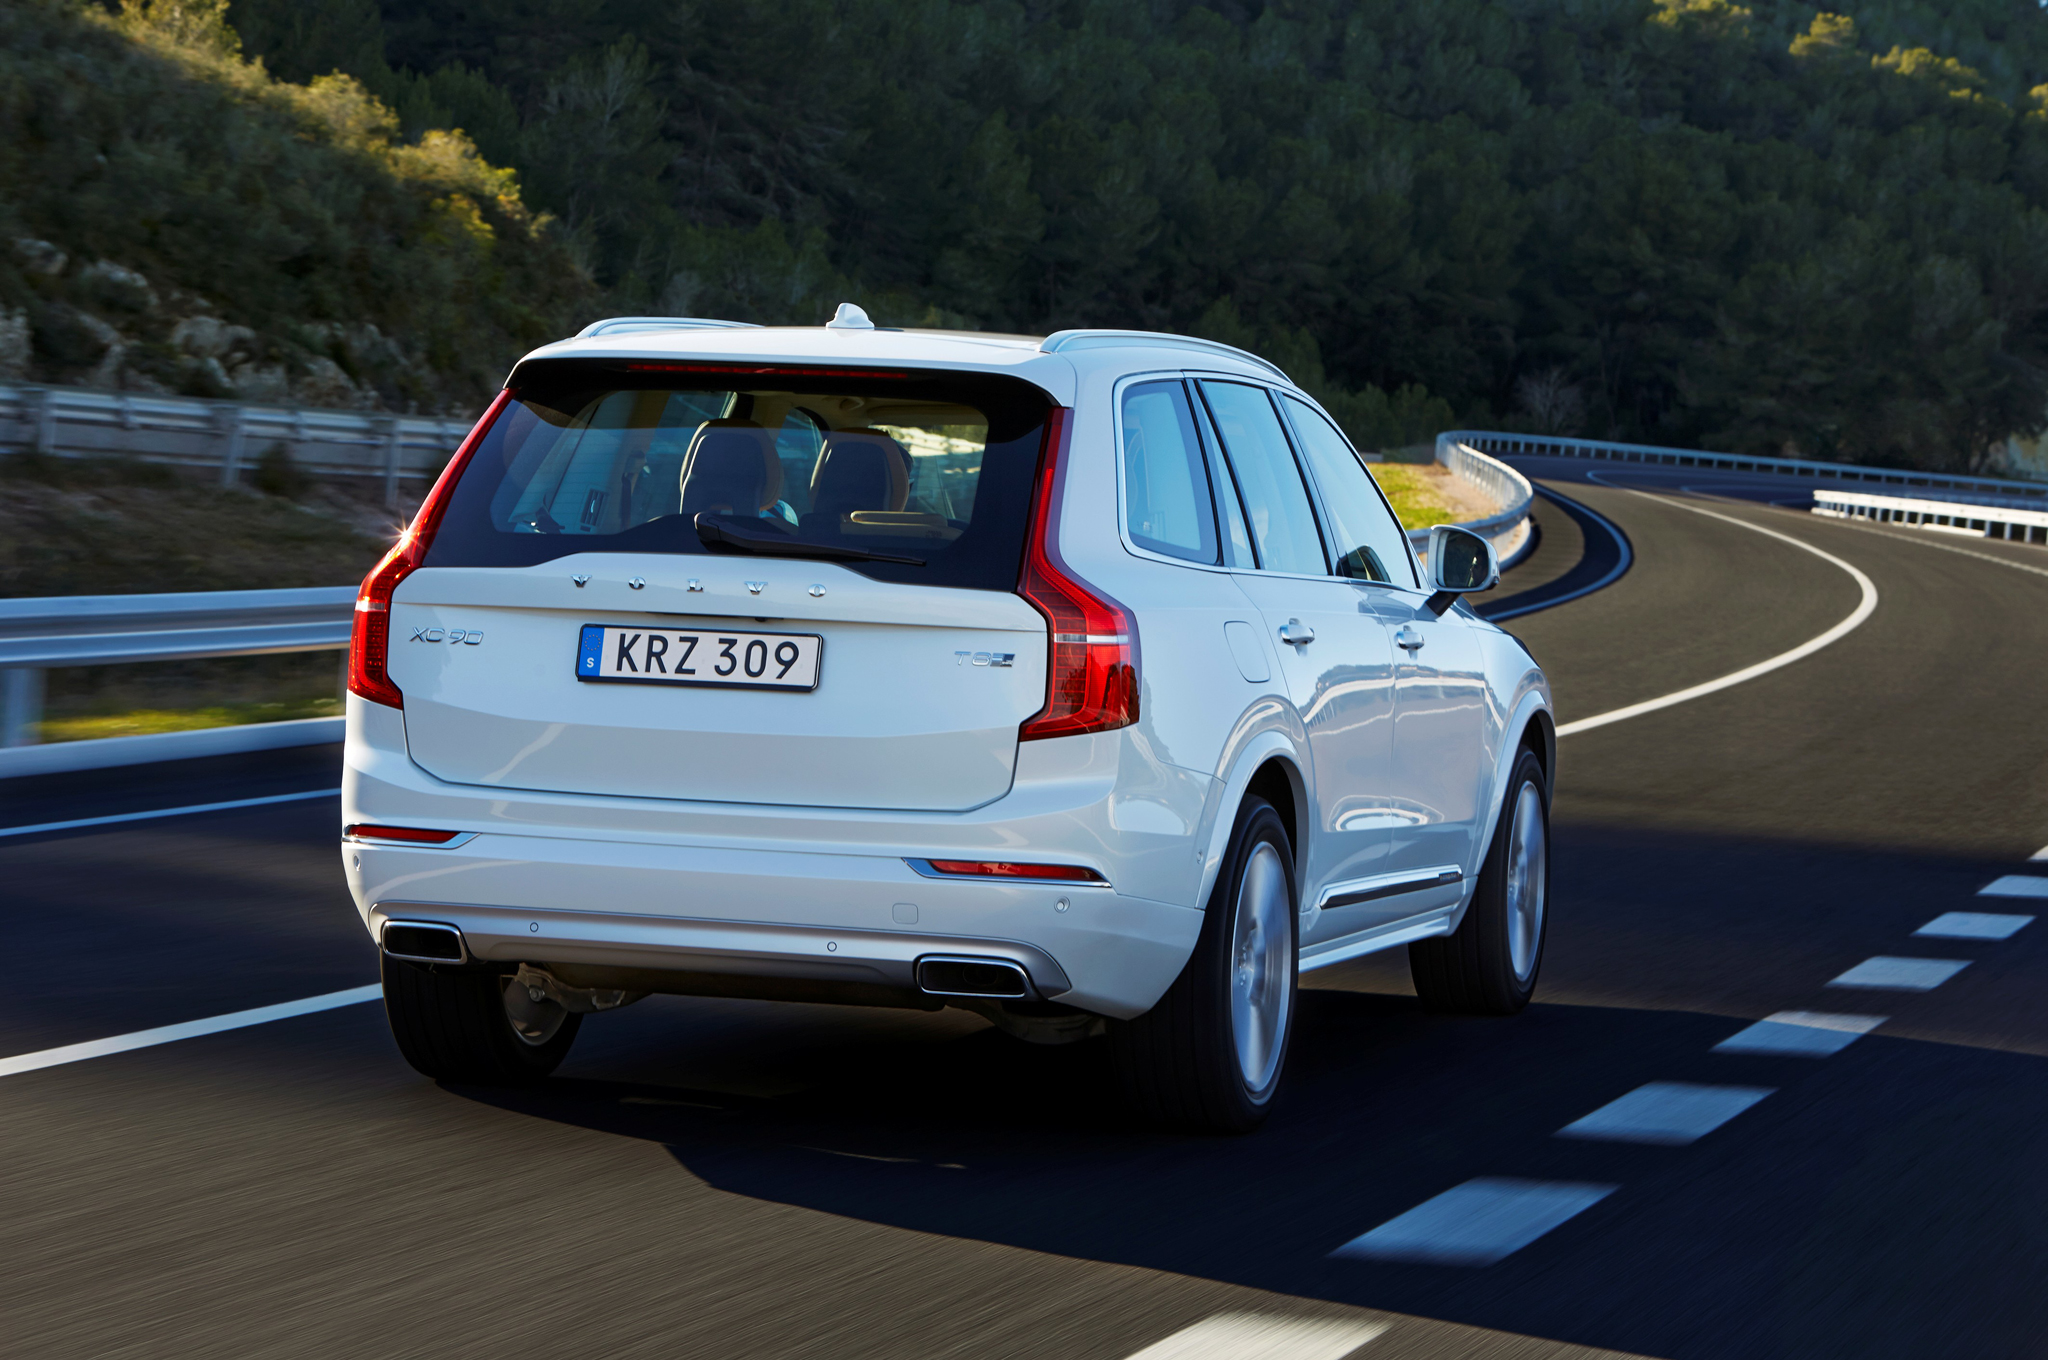 2016 Volvo Xc90 T8 Rear View (Photo 15 of 18)